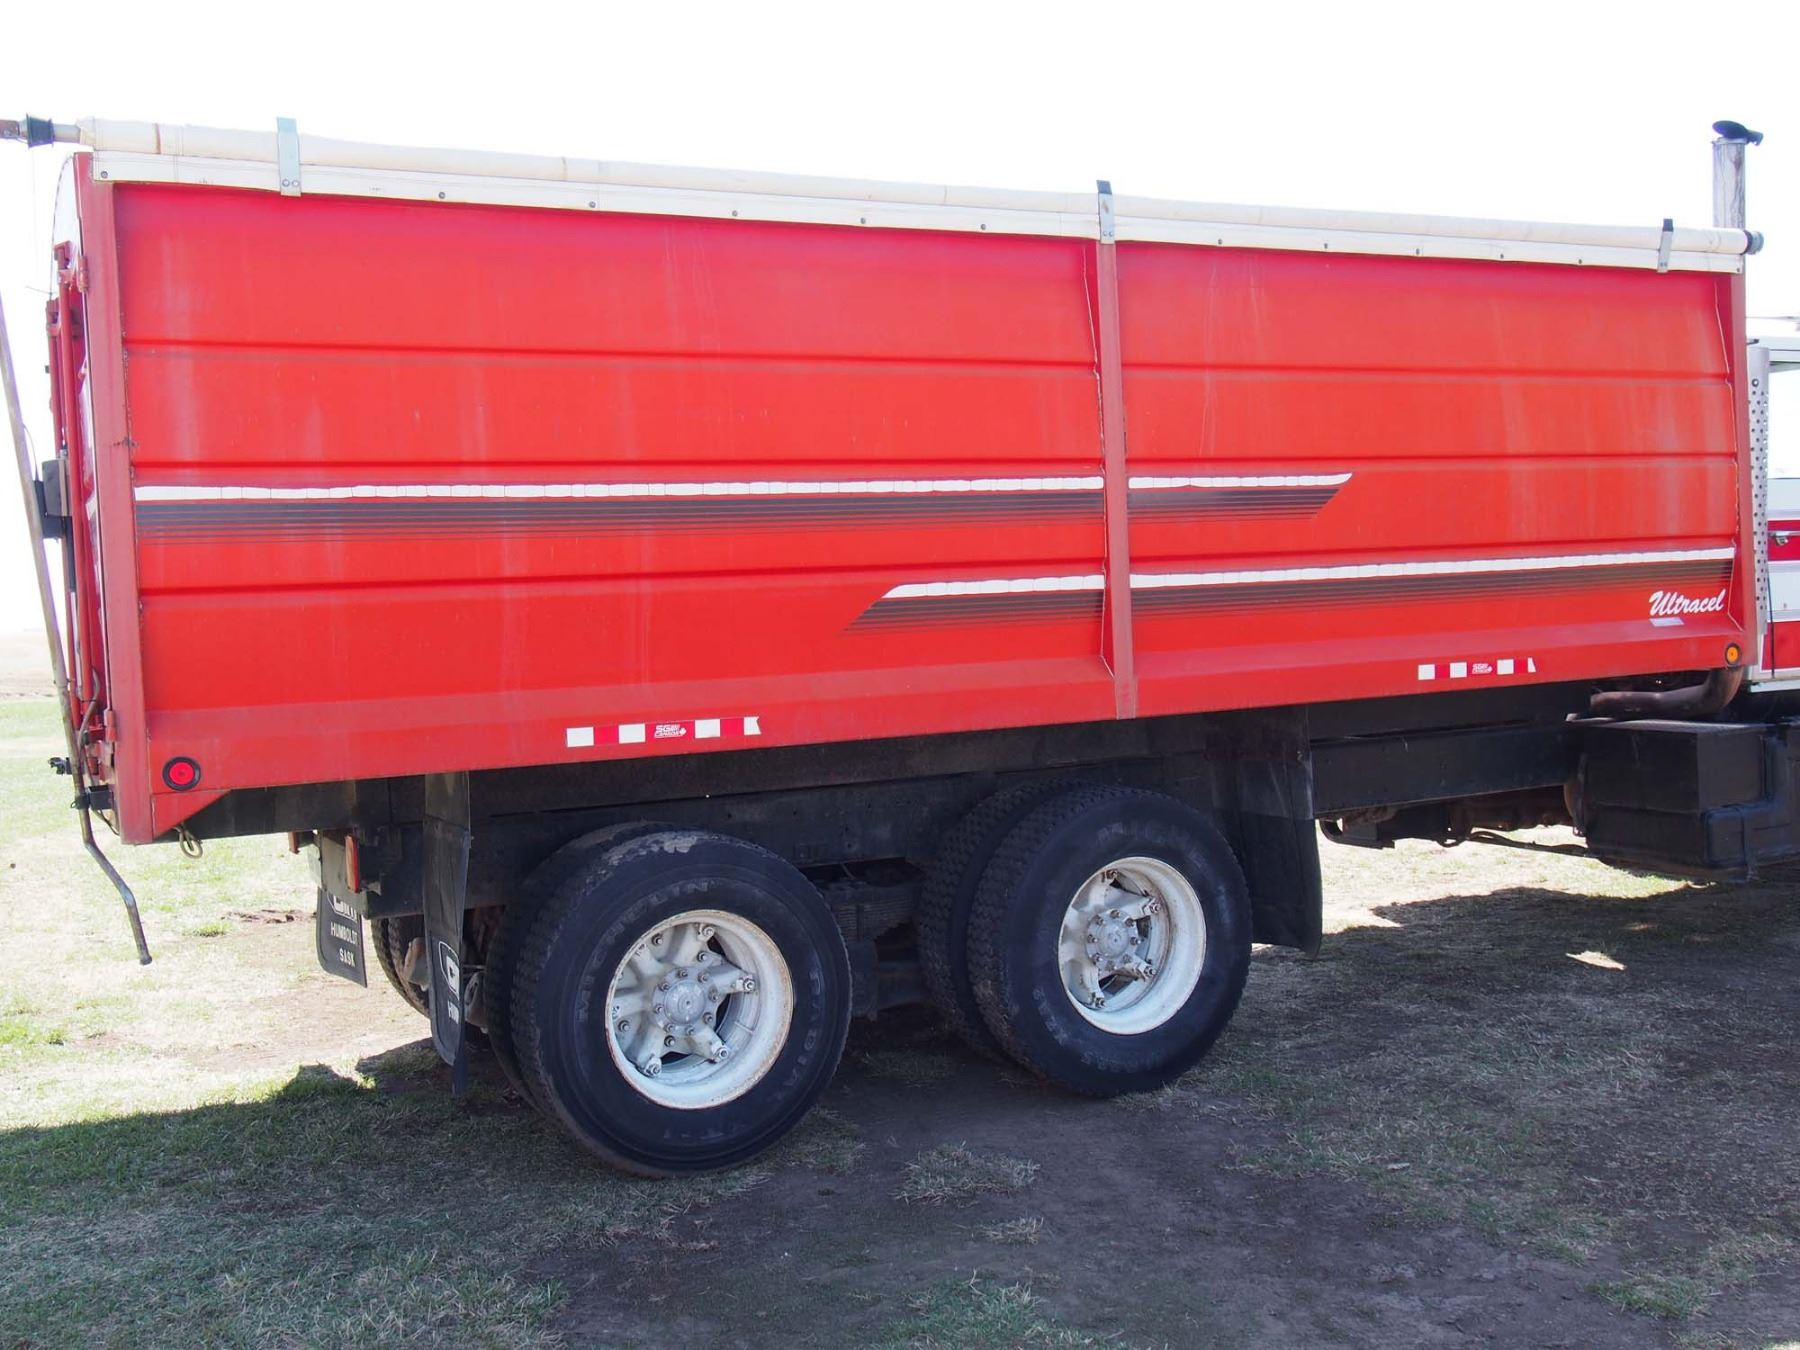 image 4 : 1988 ford l9000 tandem truck 855 cummings engine, 20' box and